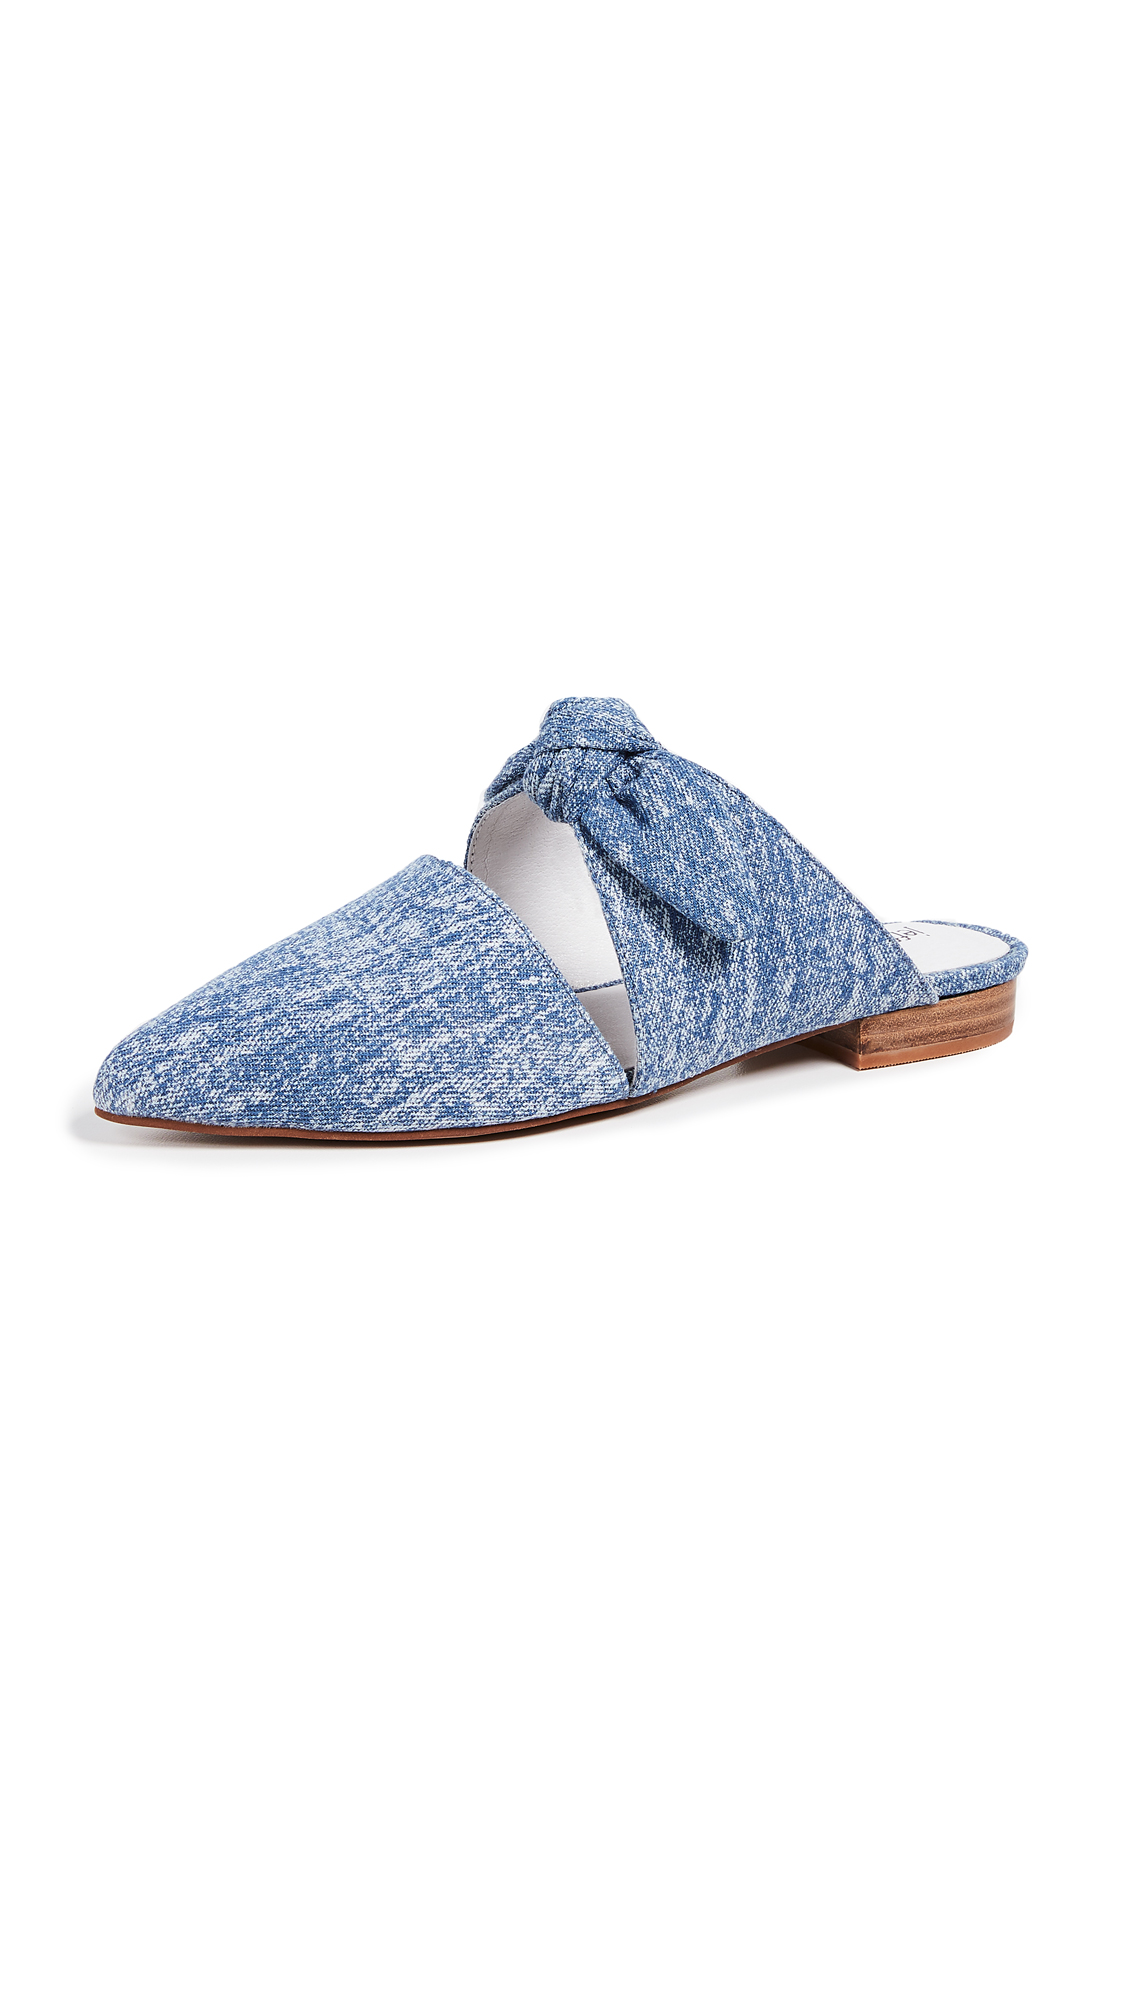 Jeffrey Campbell Charlin Point Toe Mules - Blue Denim